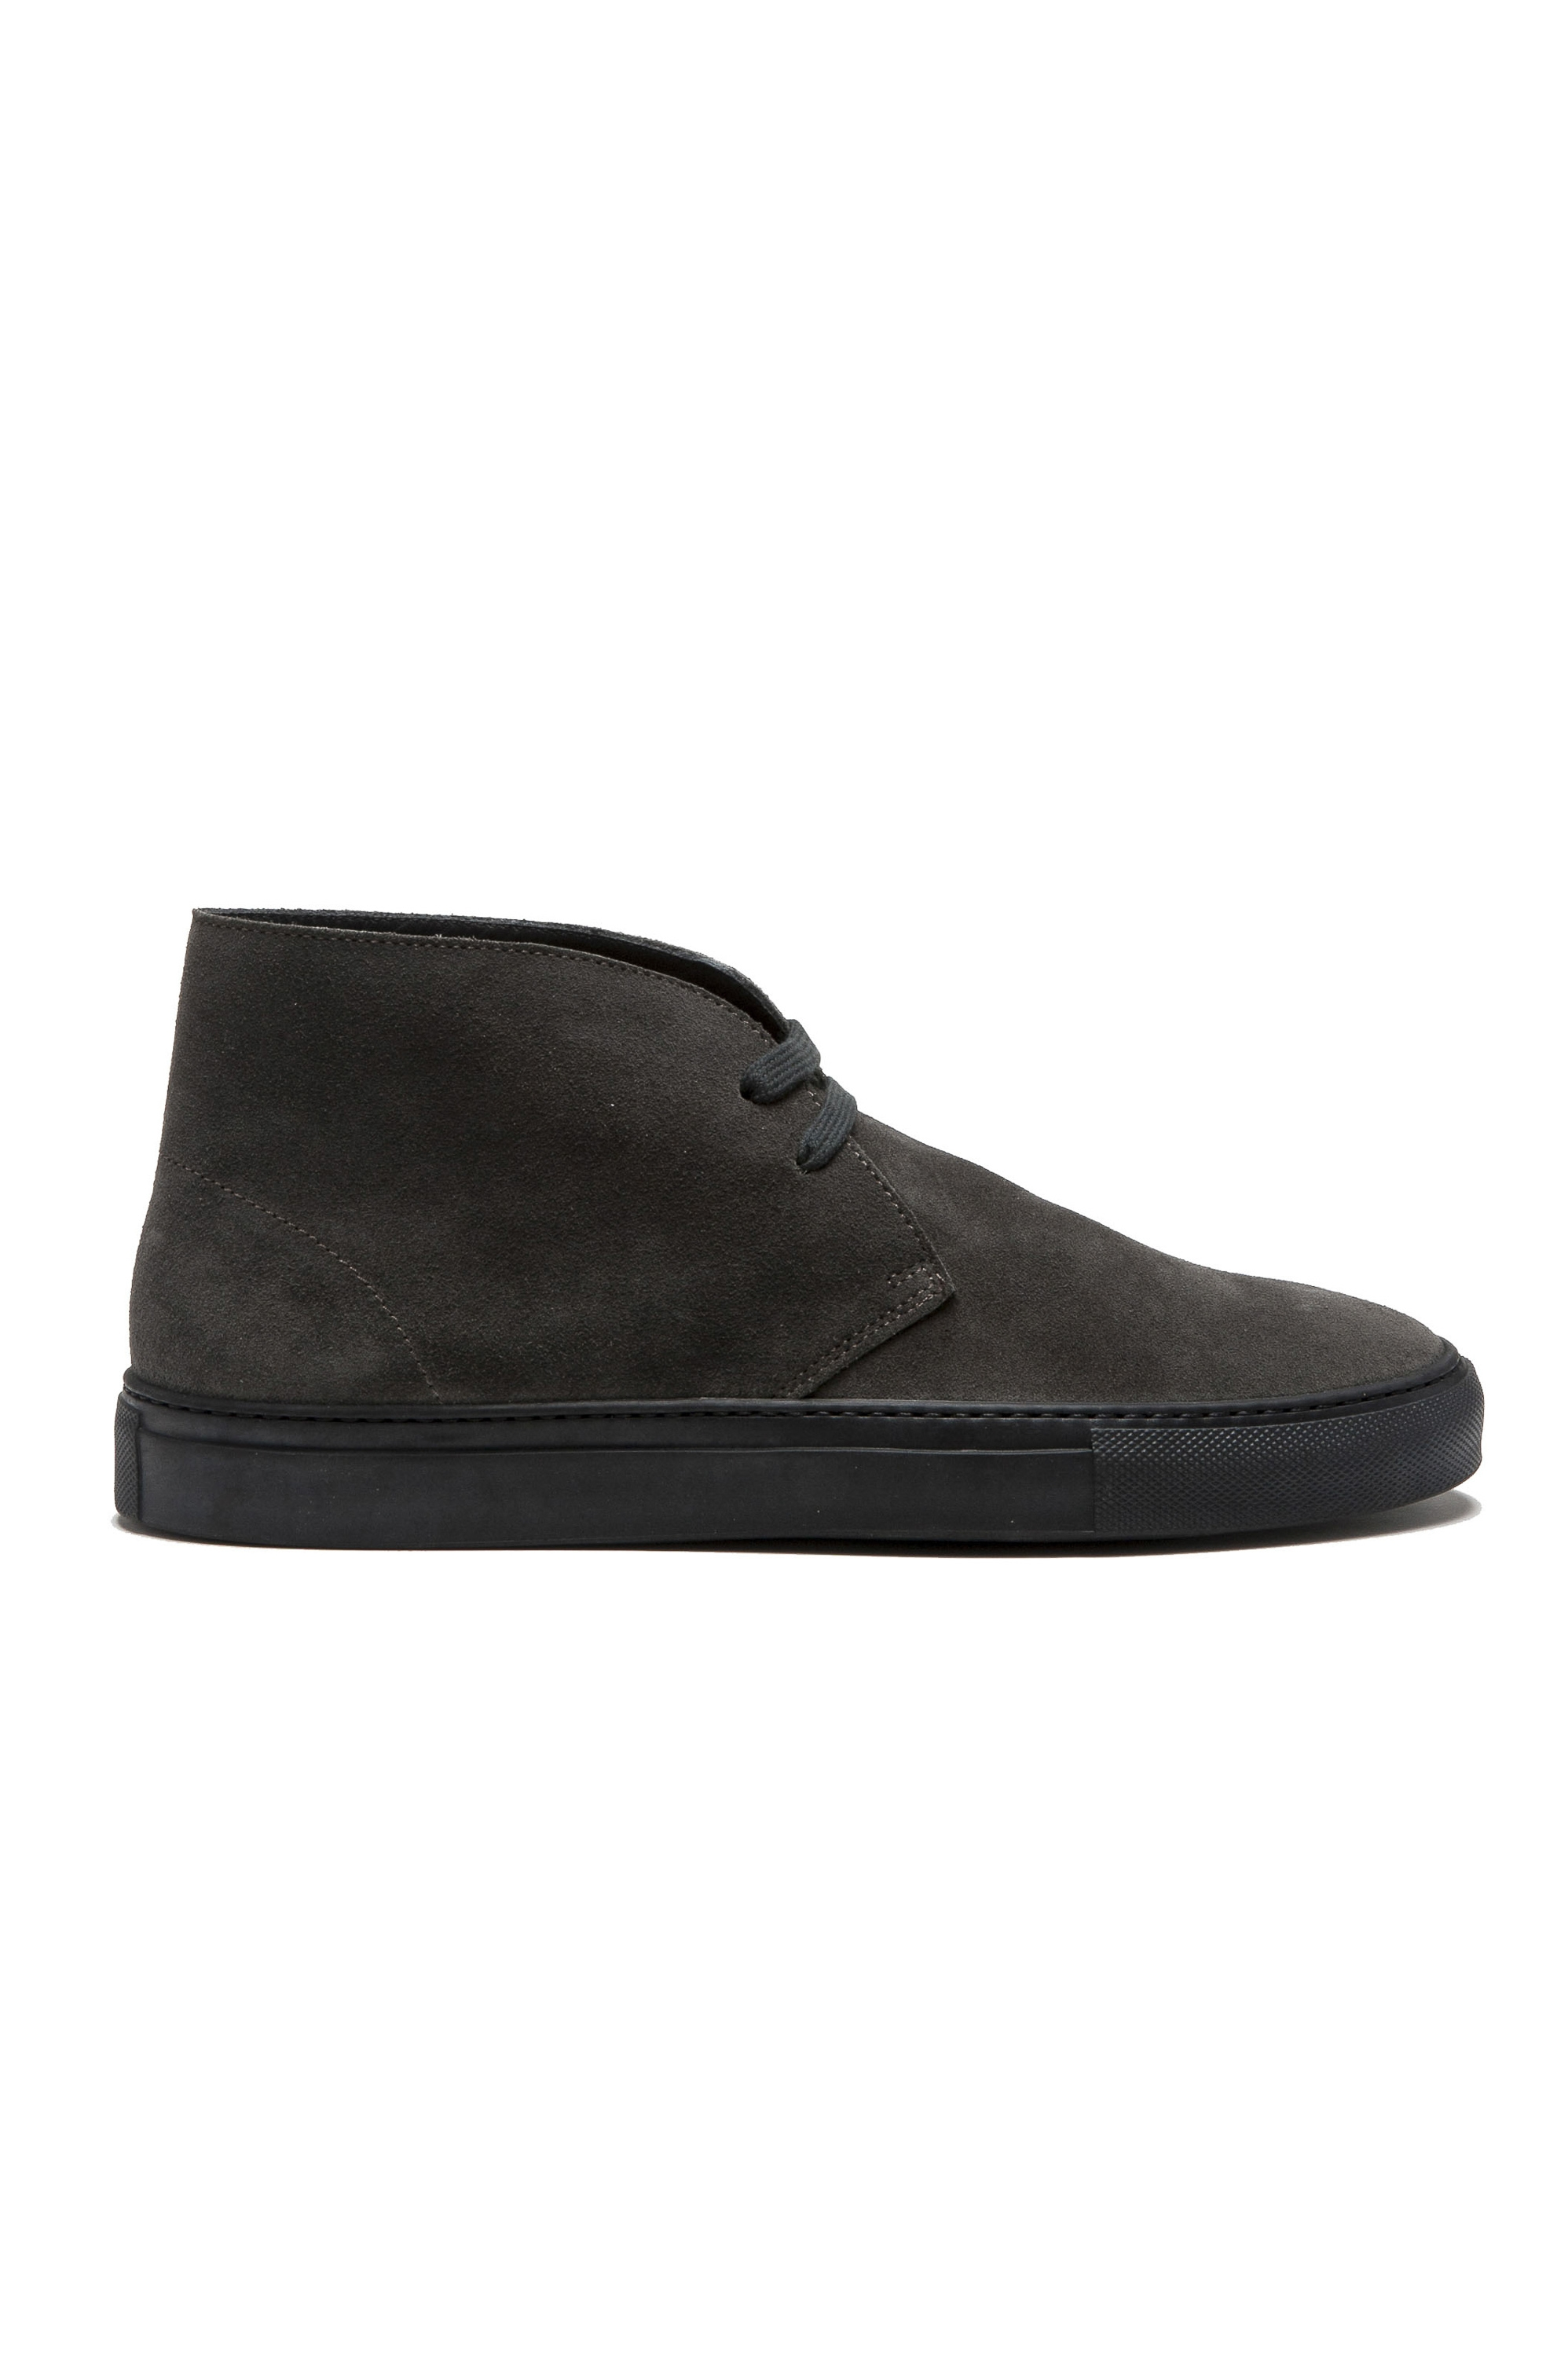 SBU 01521 Chukka boots in grey suede calfskin leather 01